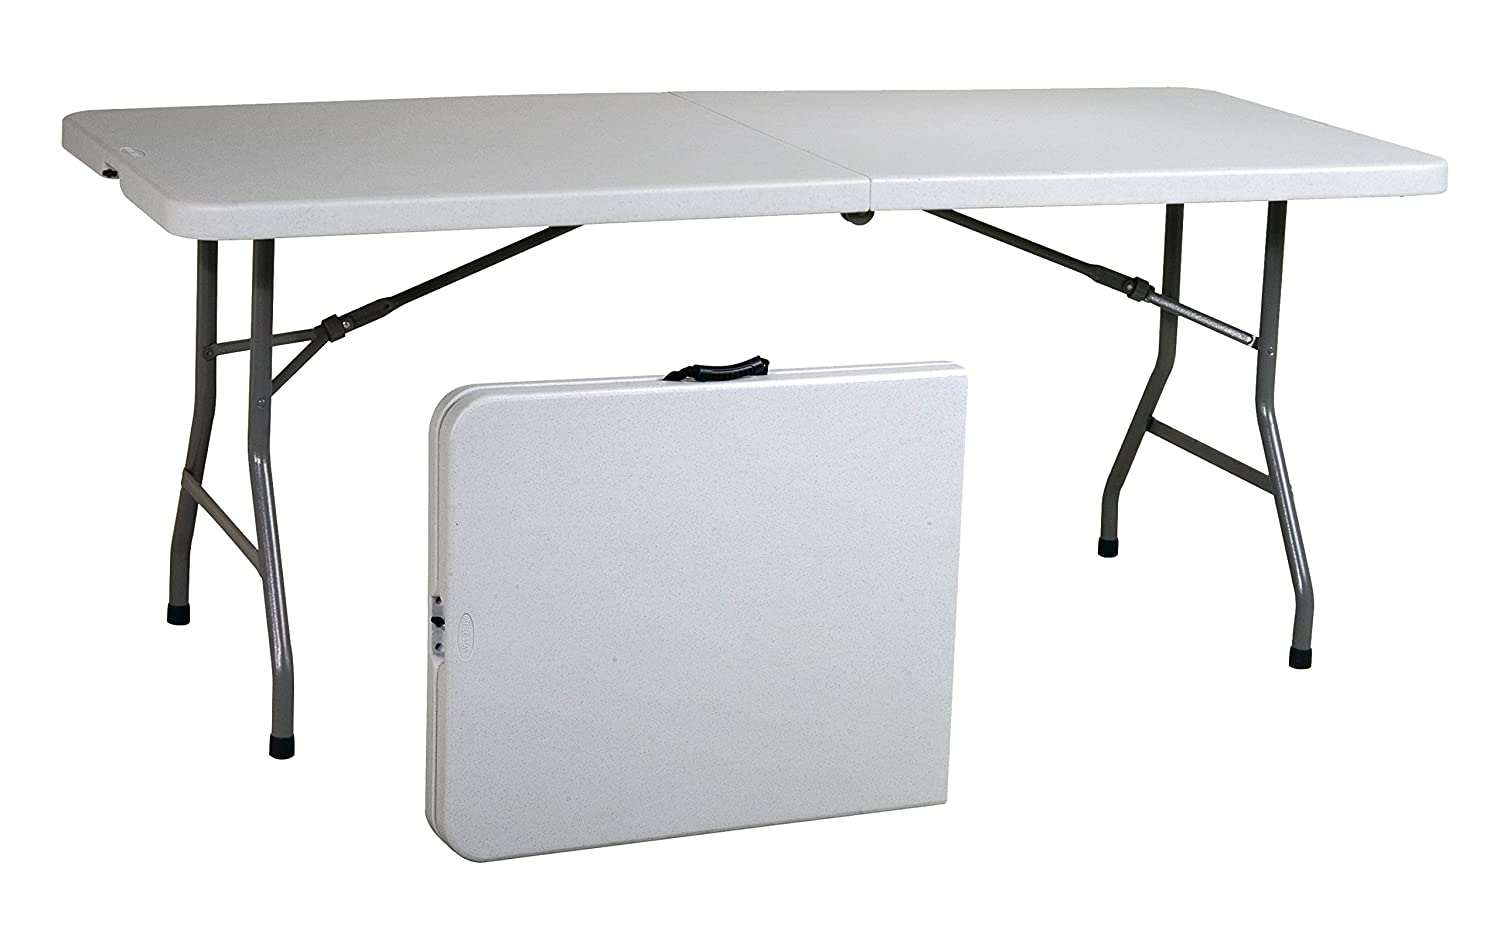 Tables for us the best 6 foot folding table for Table 6 feet